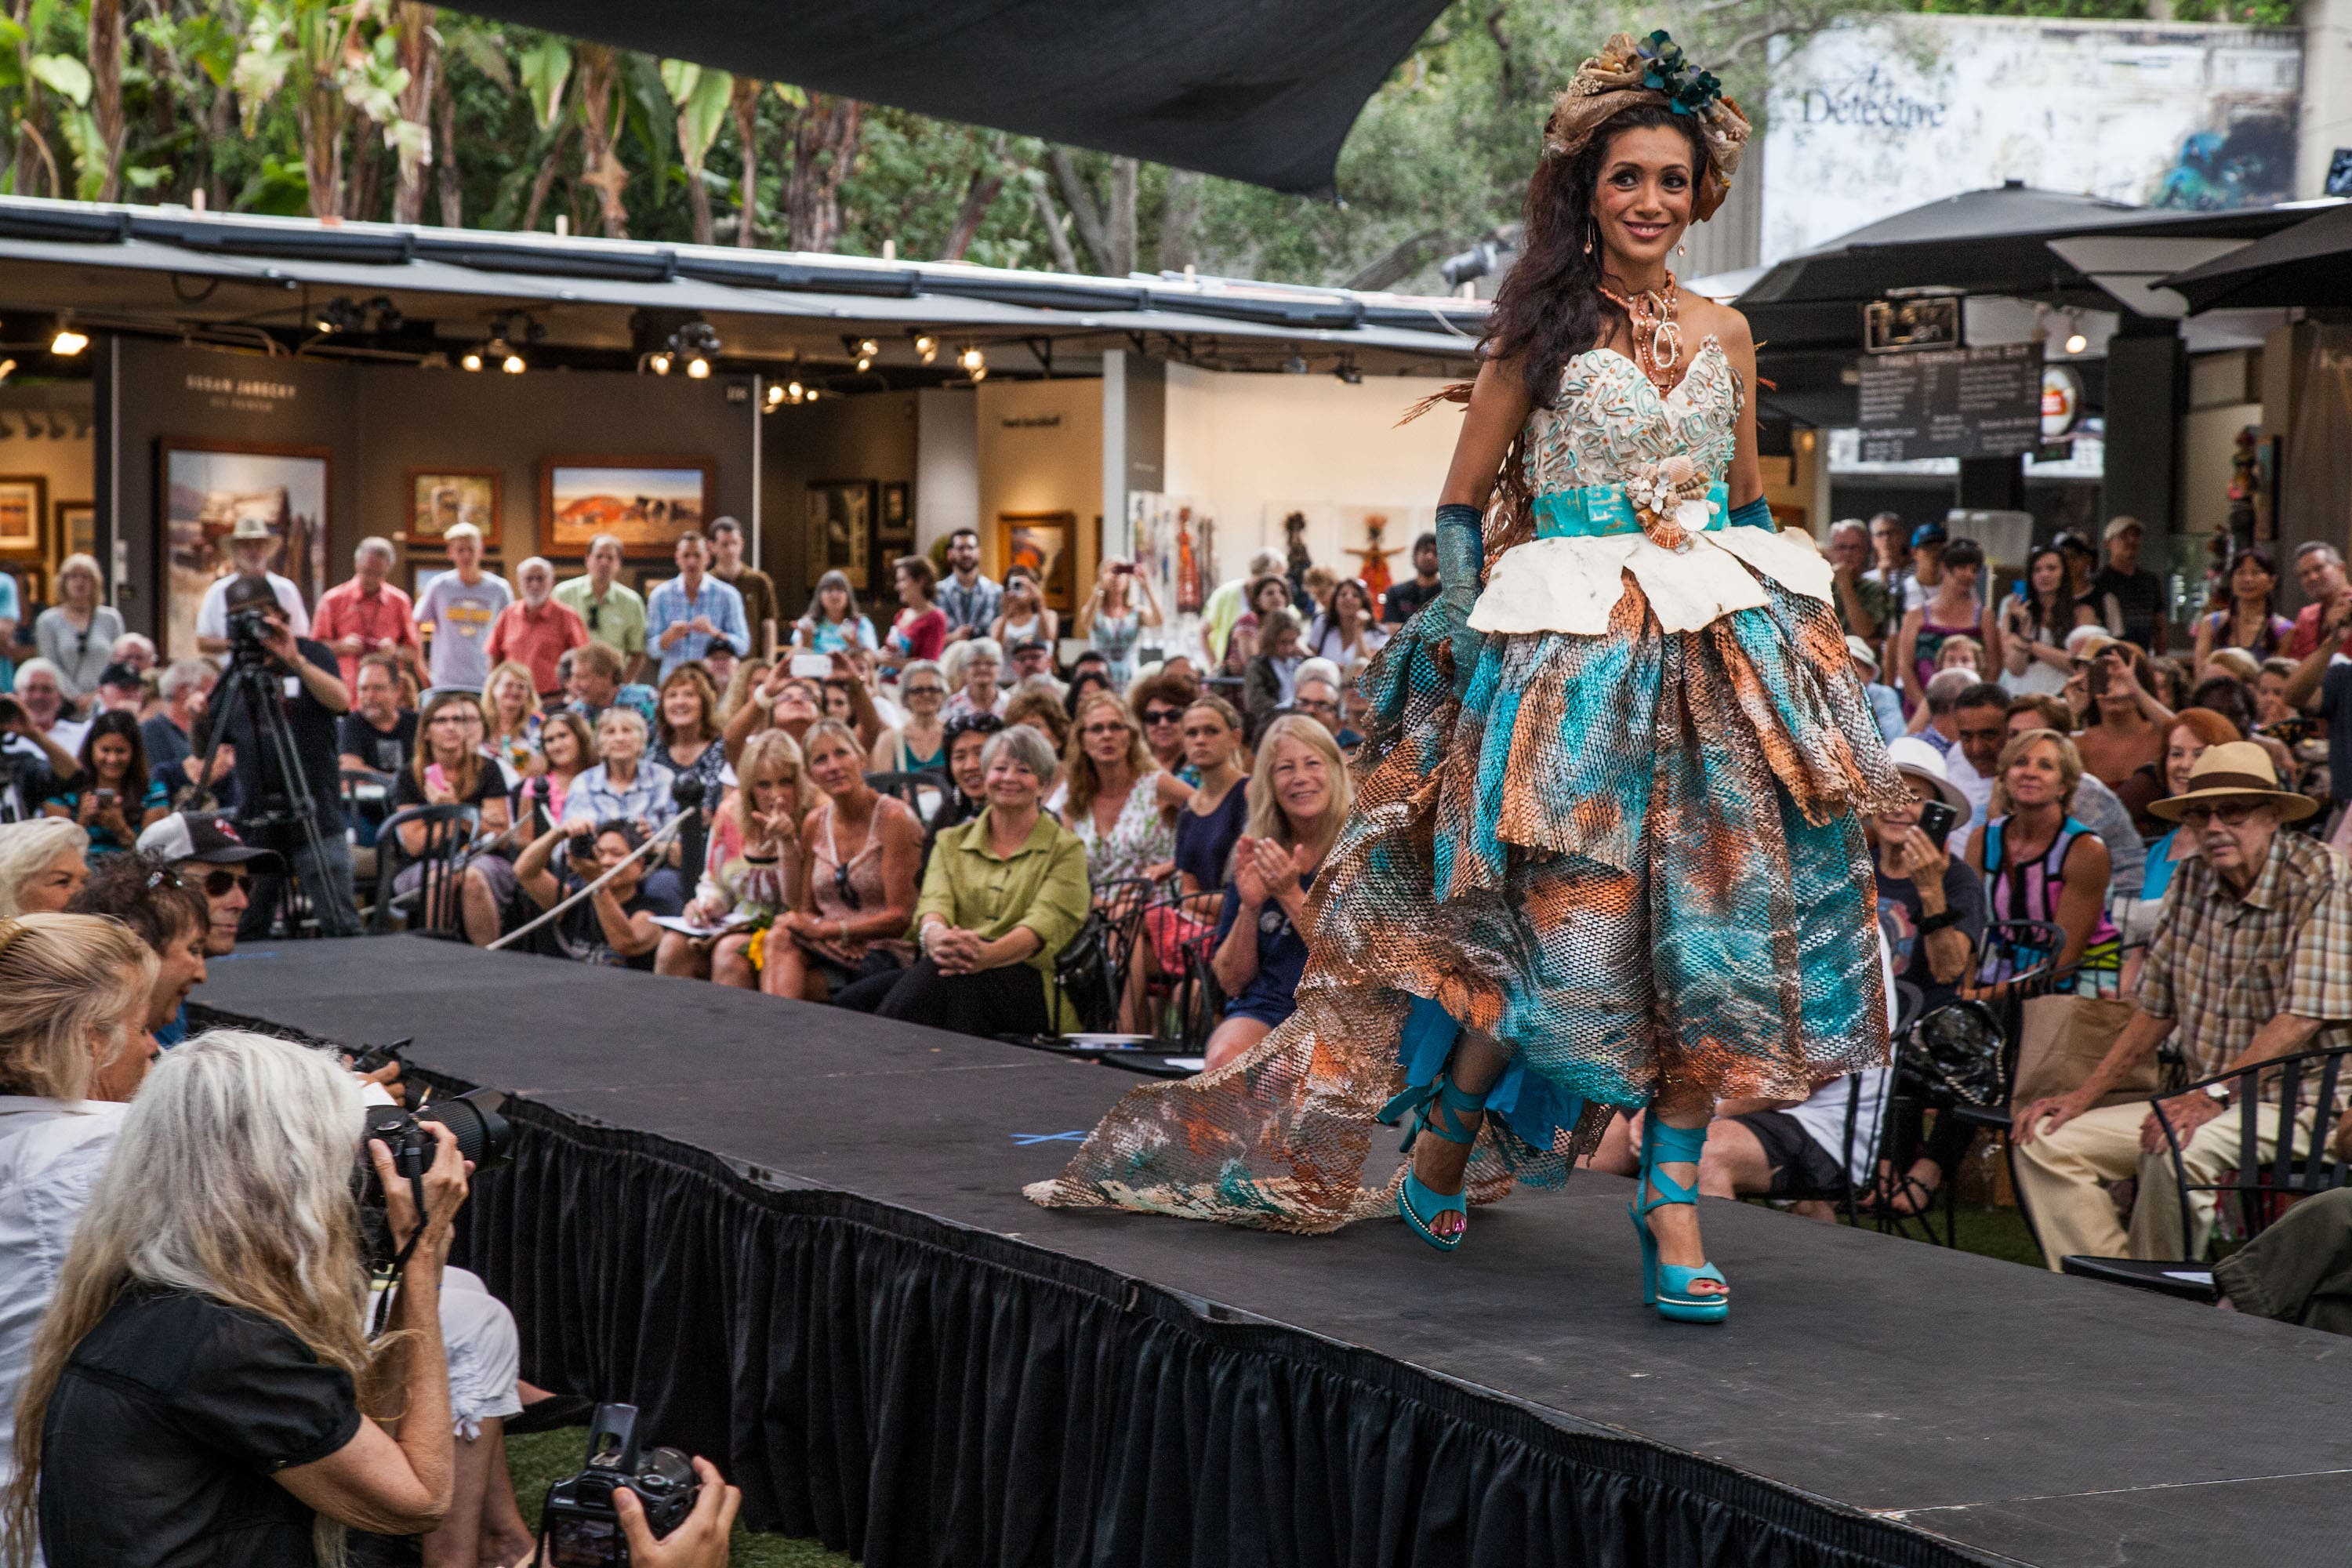 Fashion Gets Re Invented With An Artistic Twist At Festival Of Arts Runway Fashion Show Laguna Beach Ca Patch